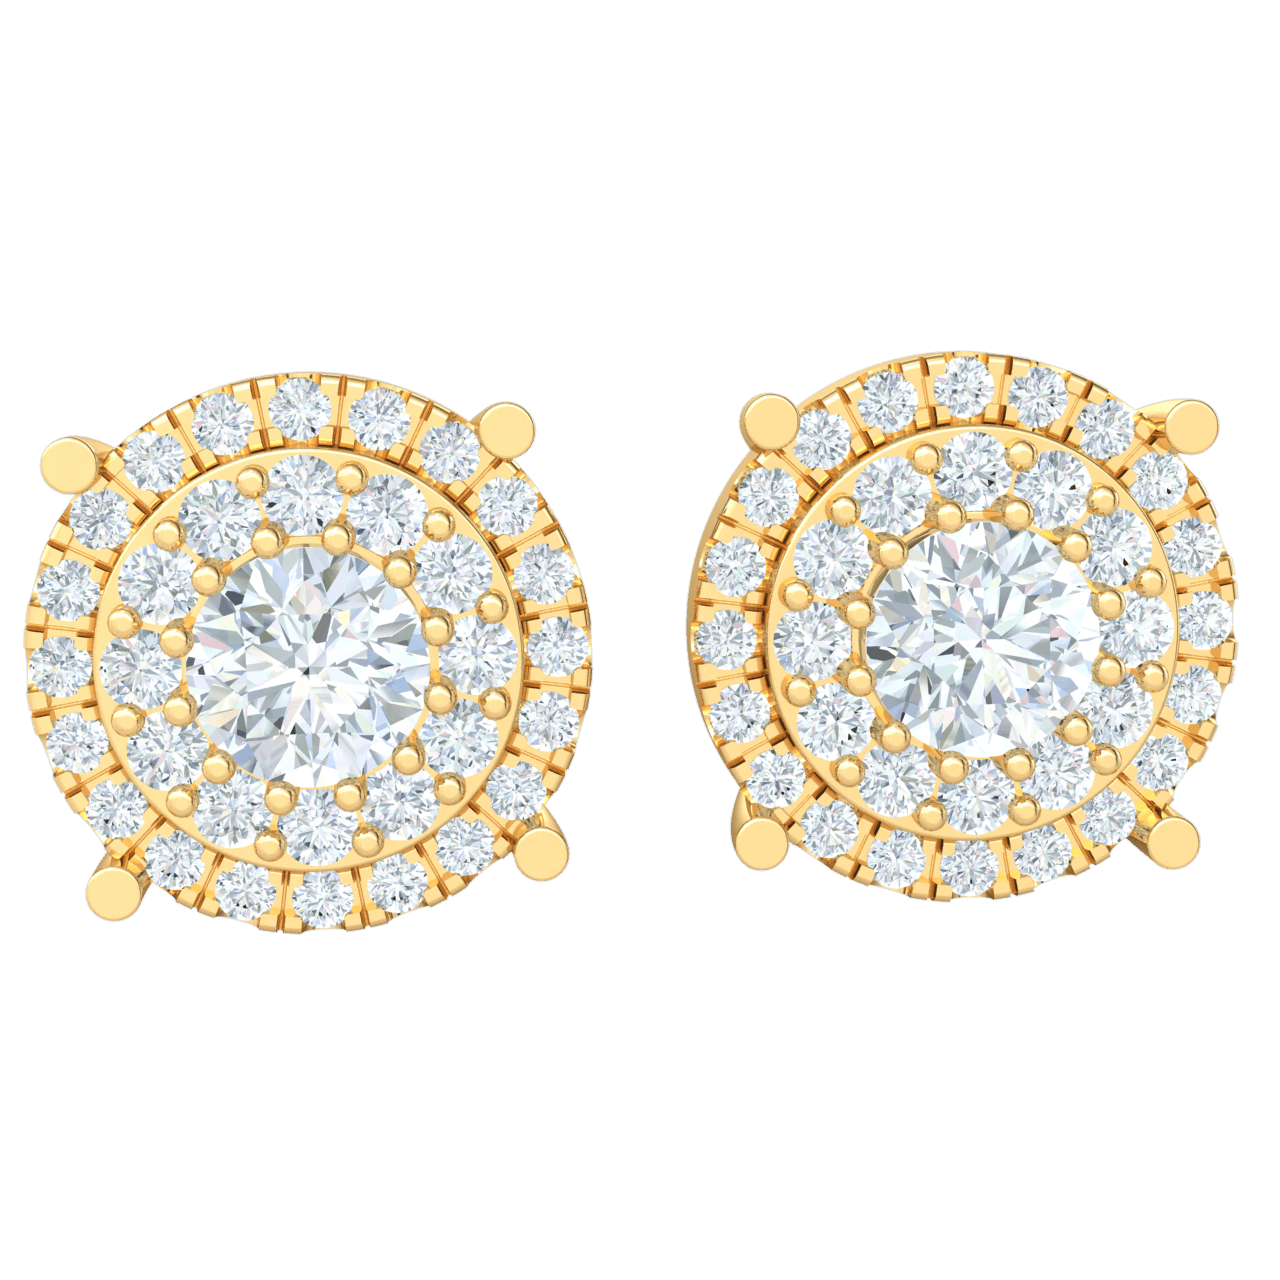 1.70 Ctw Stunning White Diamond Solitare Stud Earrings Surrounded By Circular Rows Of Diamonds Set In Real in IJ SI2 14 kt Gold